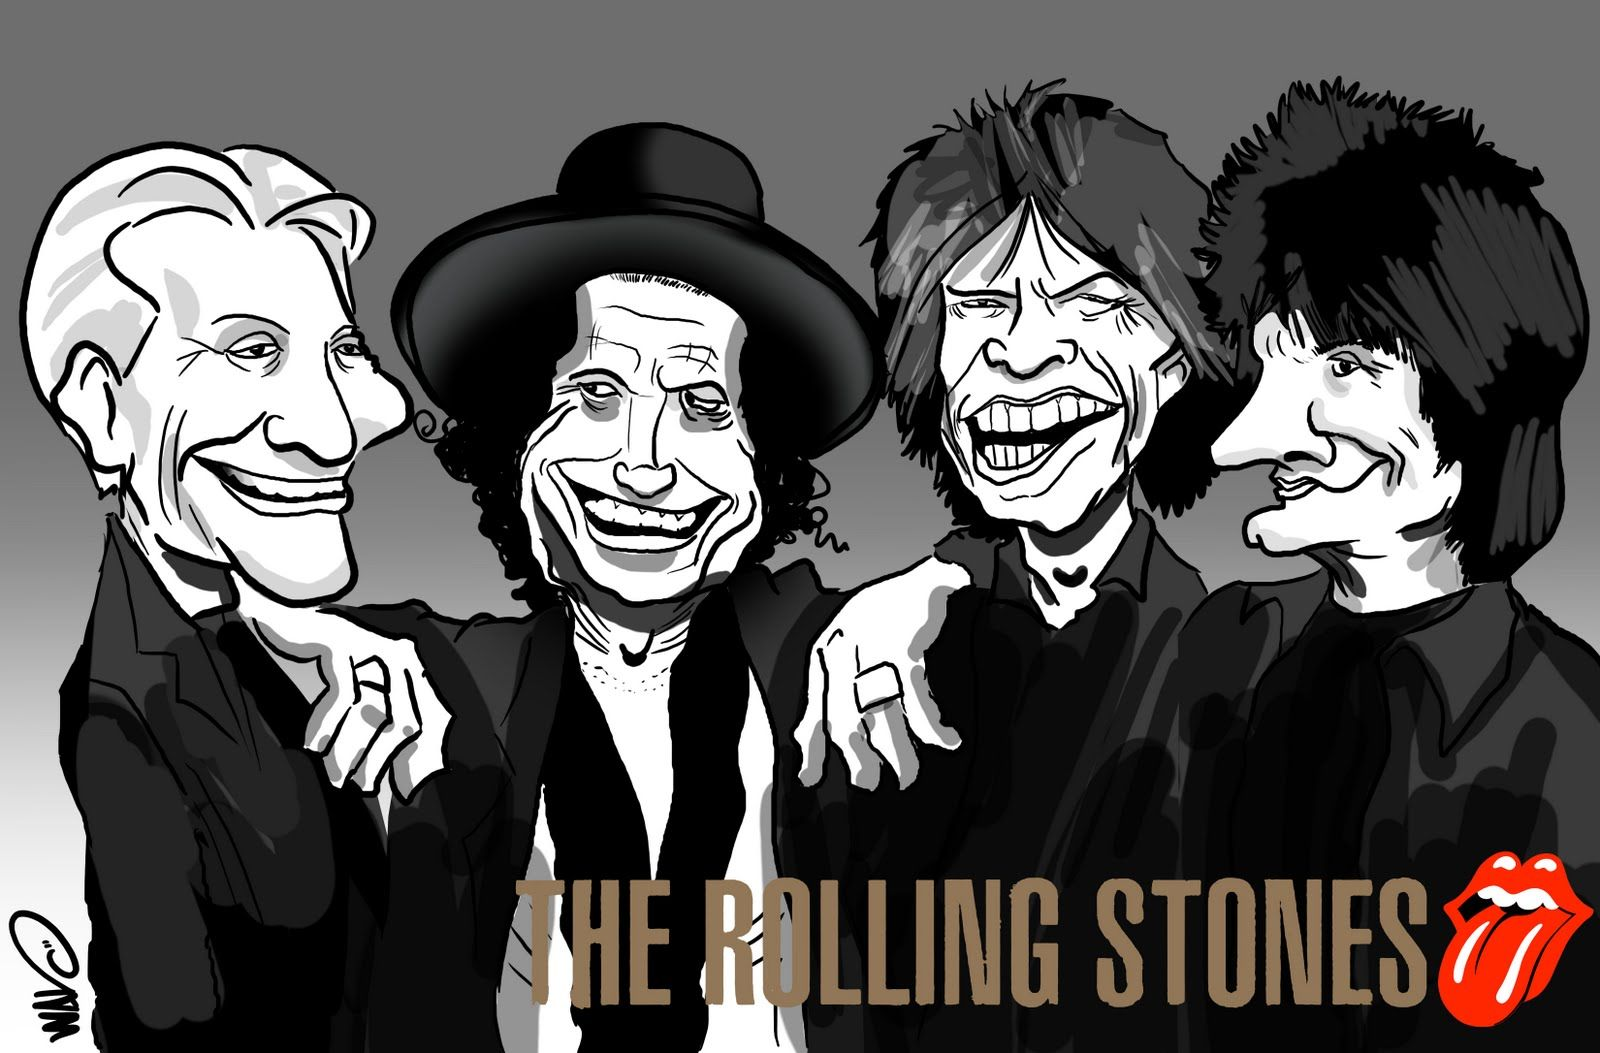 coverissimo rolling stones caricature wallpaper hd the